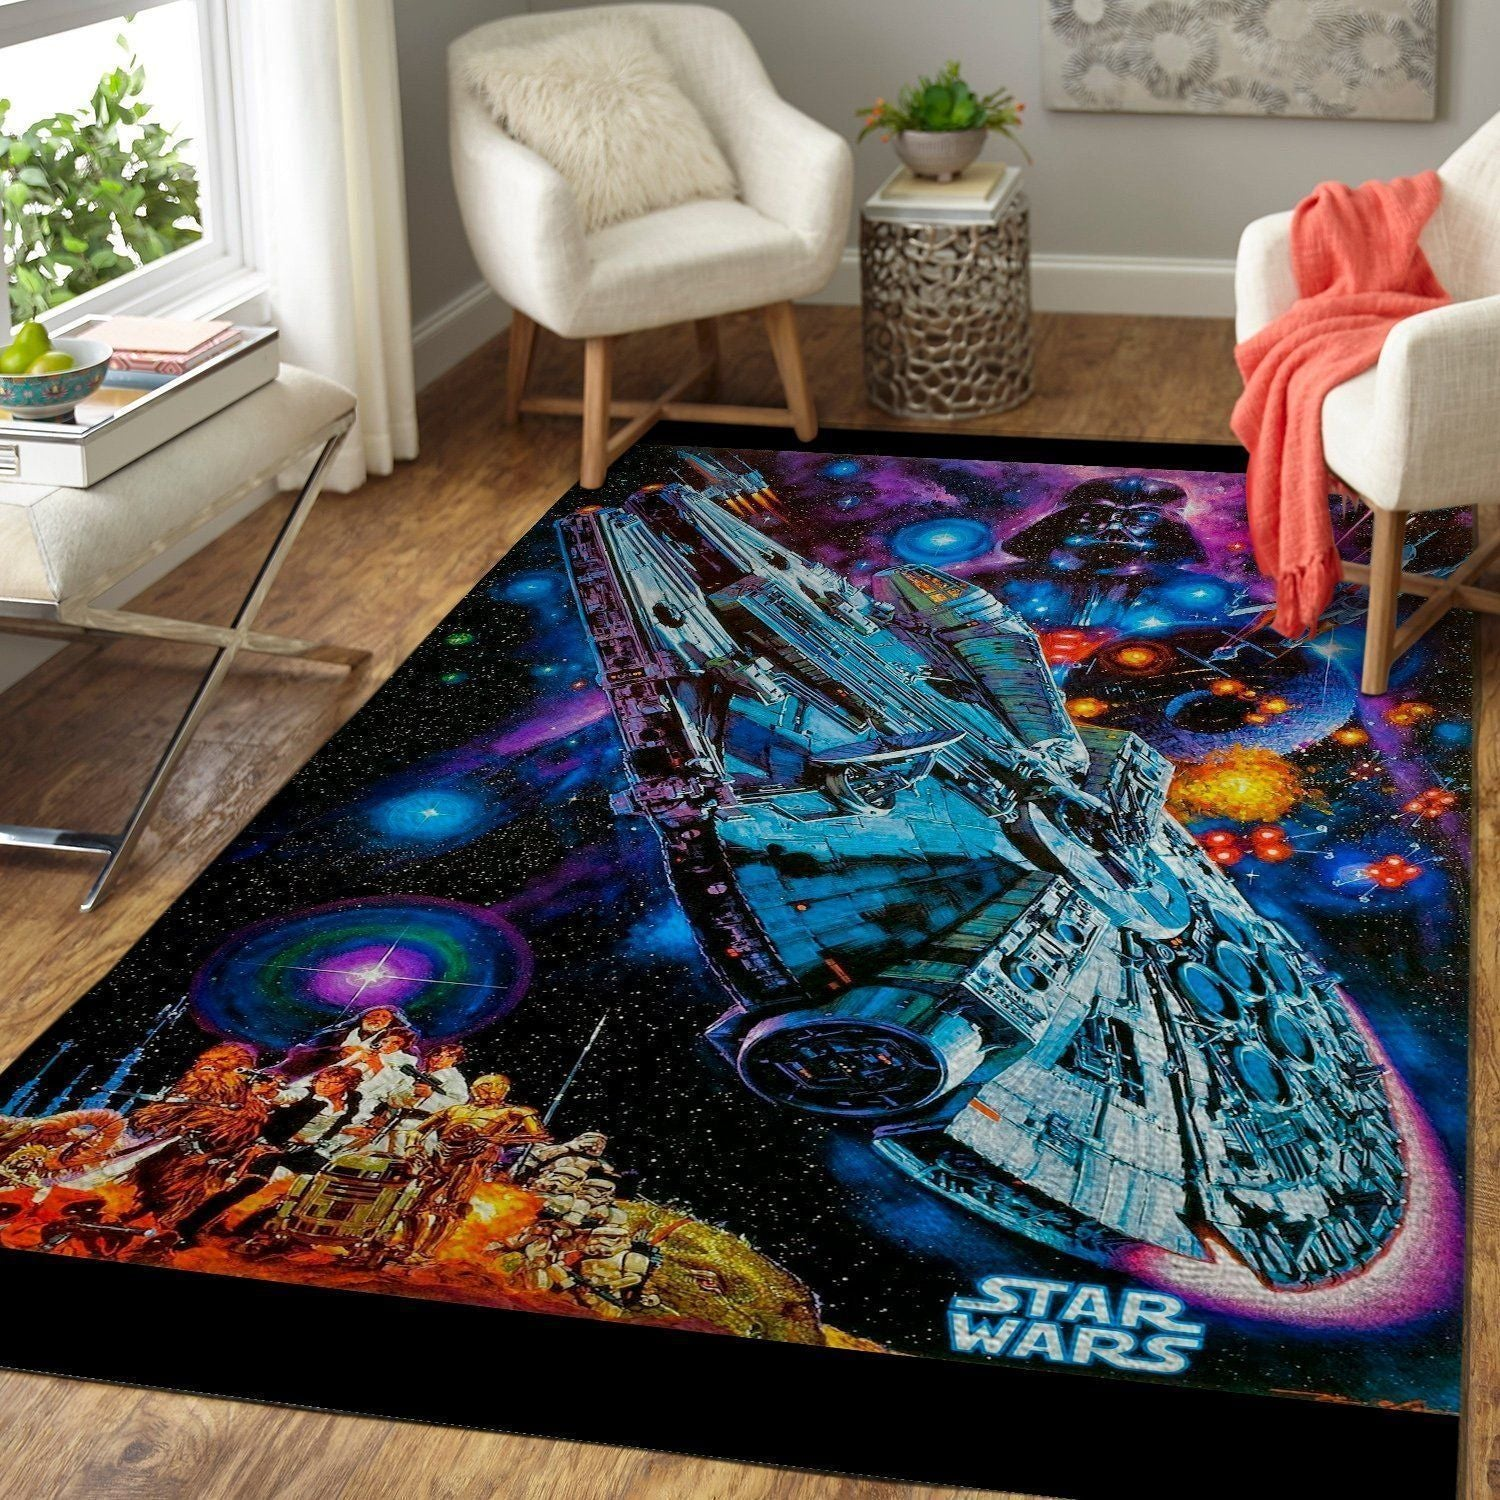 Star Wars Area Rugs, Movie Living Room Carpet, Custom Floor Decor 19101932